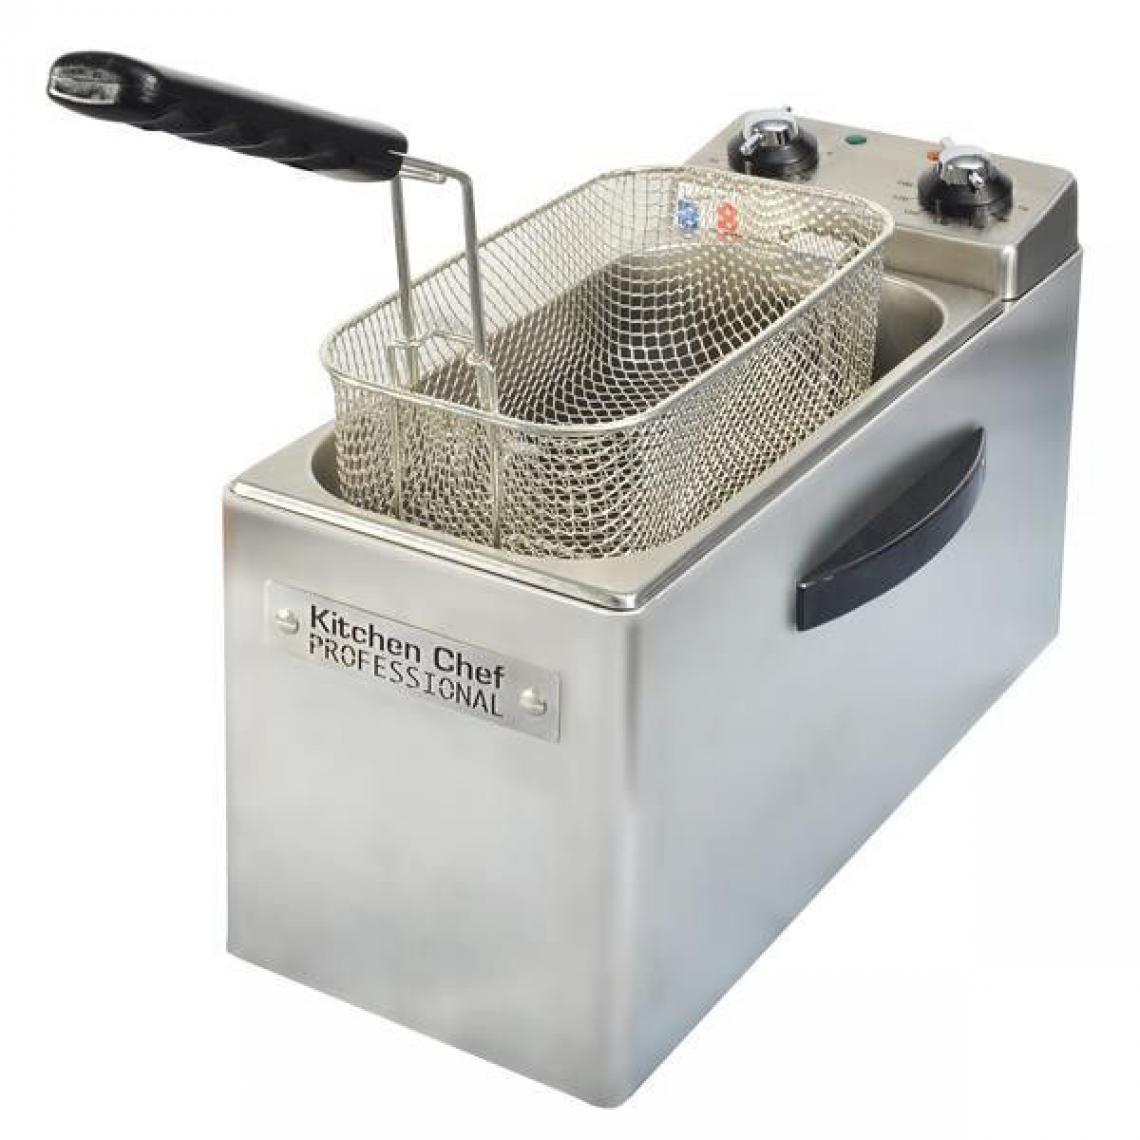 Kitchen Chef FRITEUSE INOX 2500W 4L MINUTERIE 30MN TH 190C° ZONE FROIDE DEMONTABLE KITCHENCHEF - KCFR4L